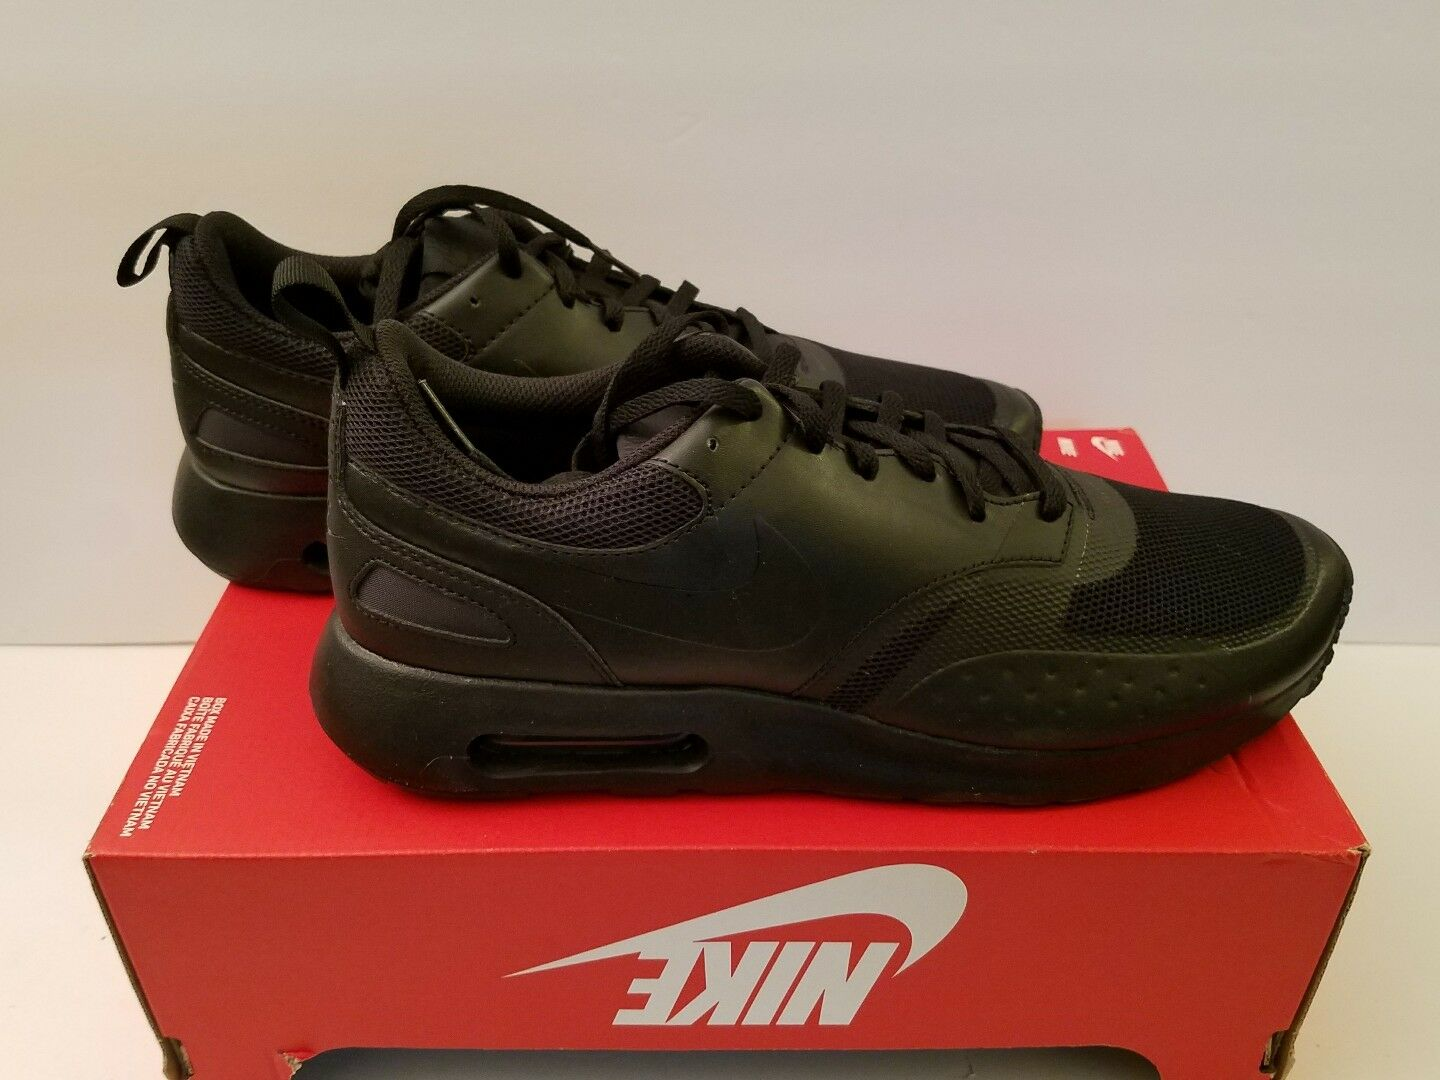 NIKE AIR MAX VISION Size 10.5 MEN'S RUNNING SHOES 918230-001